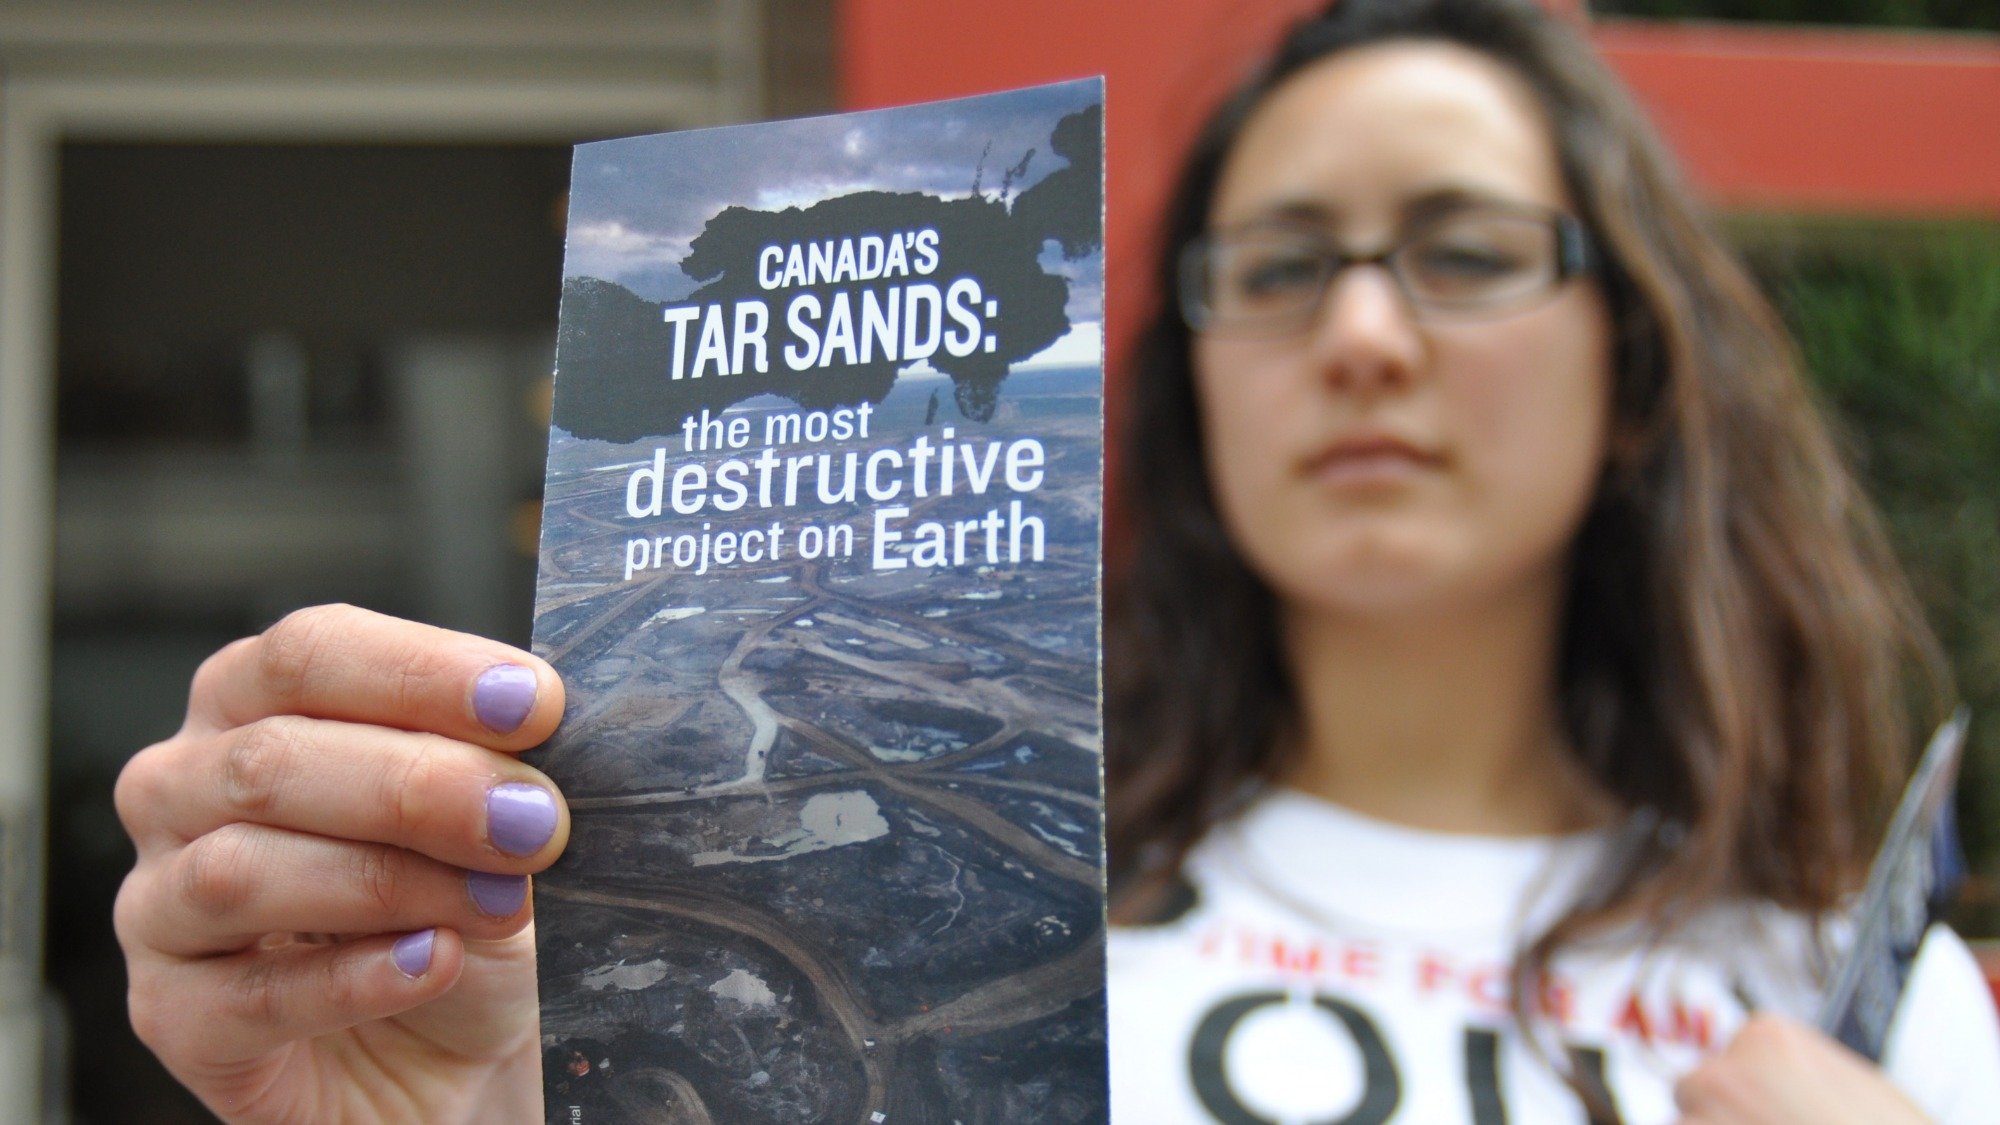 No tar sands oil